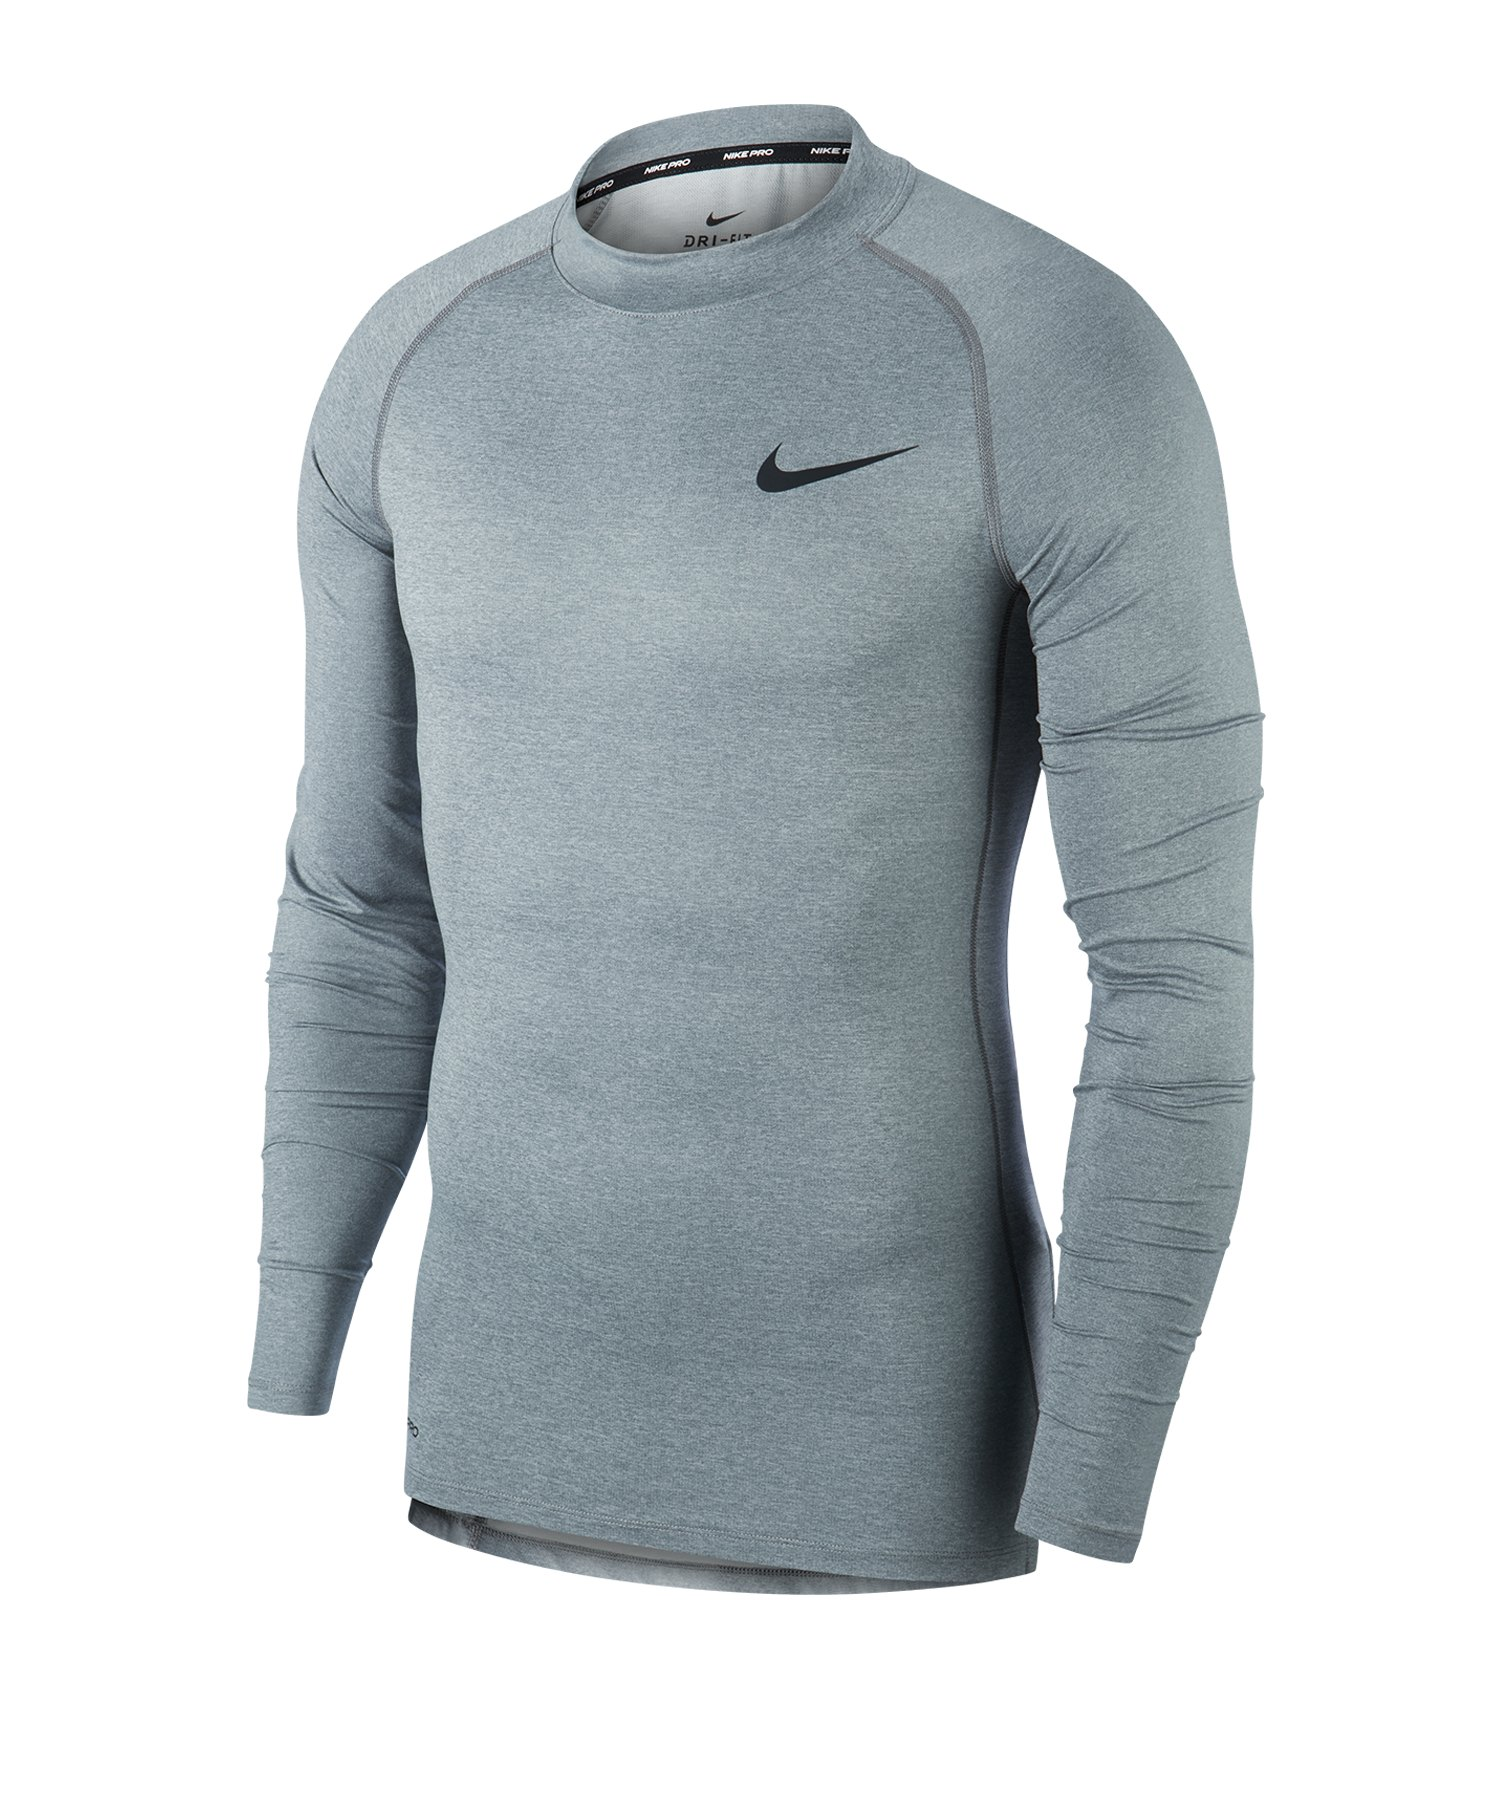 Nike Pro Training Top Mock langarm Grau F085 - grau